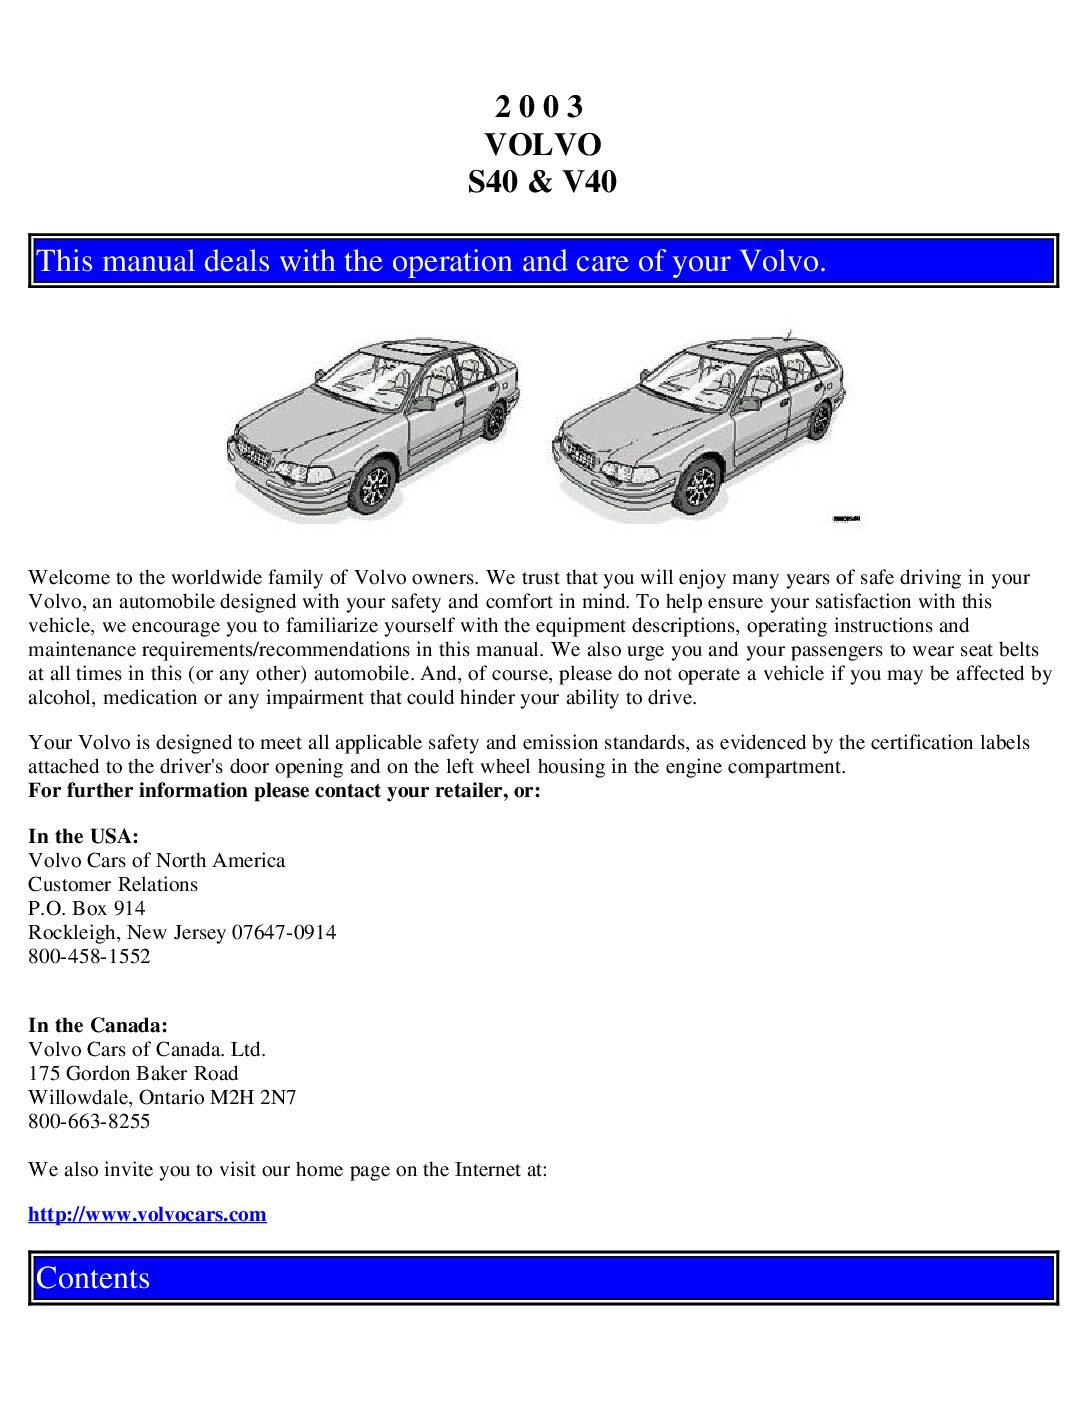 2003 volvo s40 owners manual